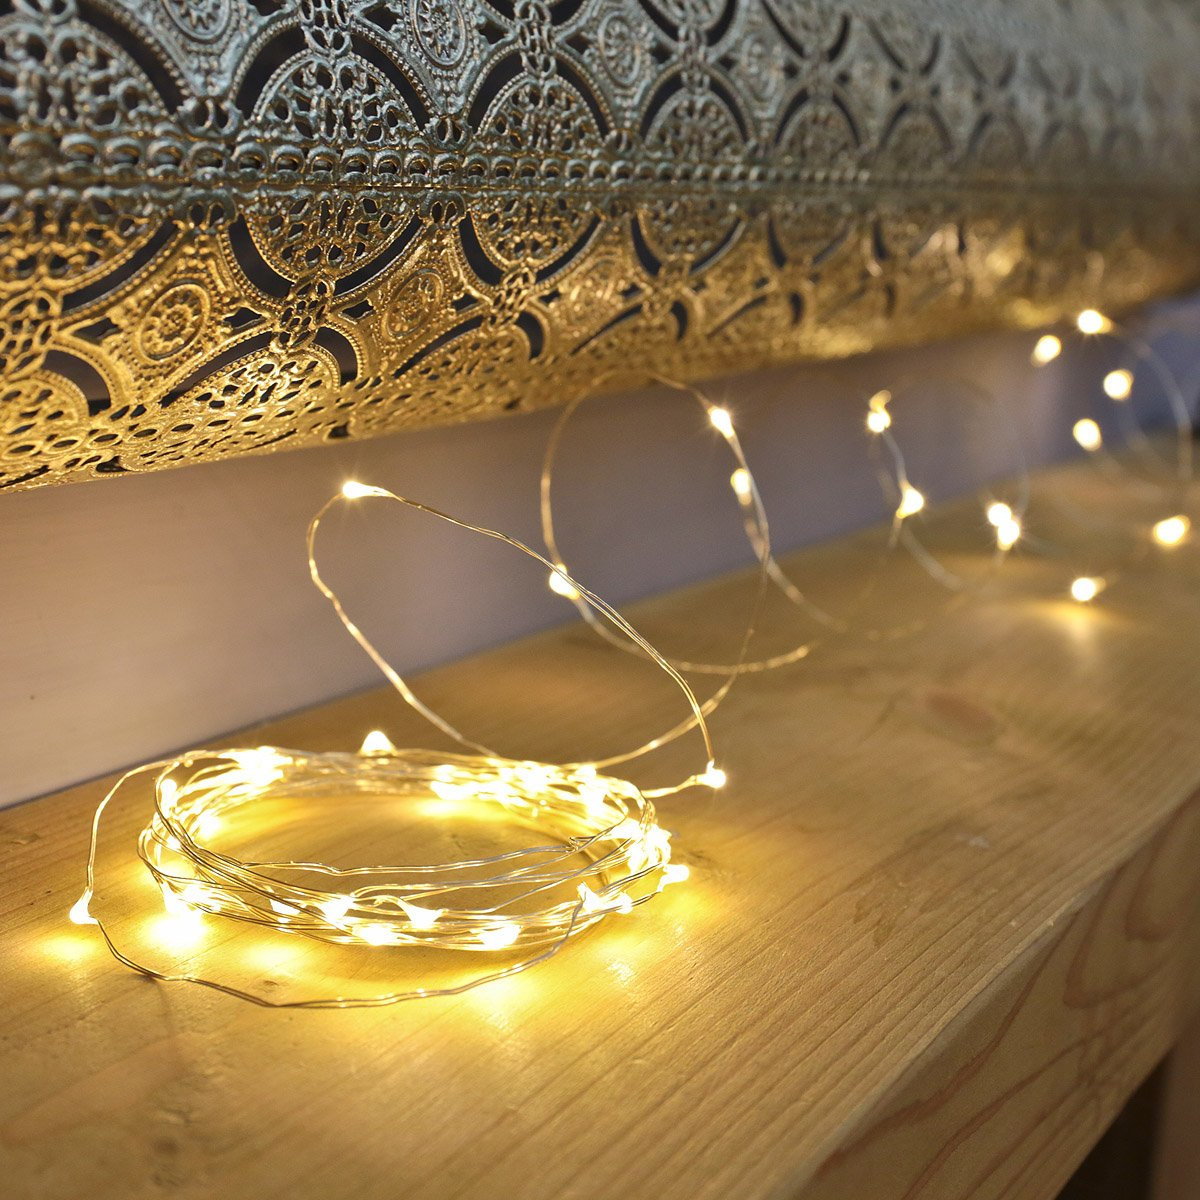 LED Wire Lights with 100 Warm White LEDs on Silver Wire by Qbis ...